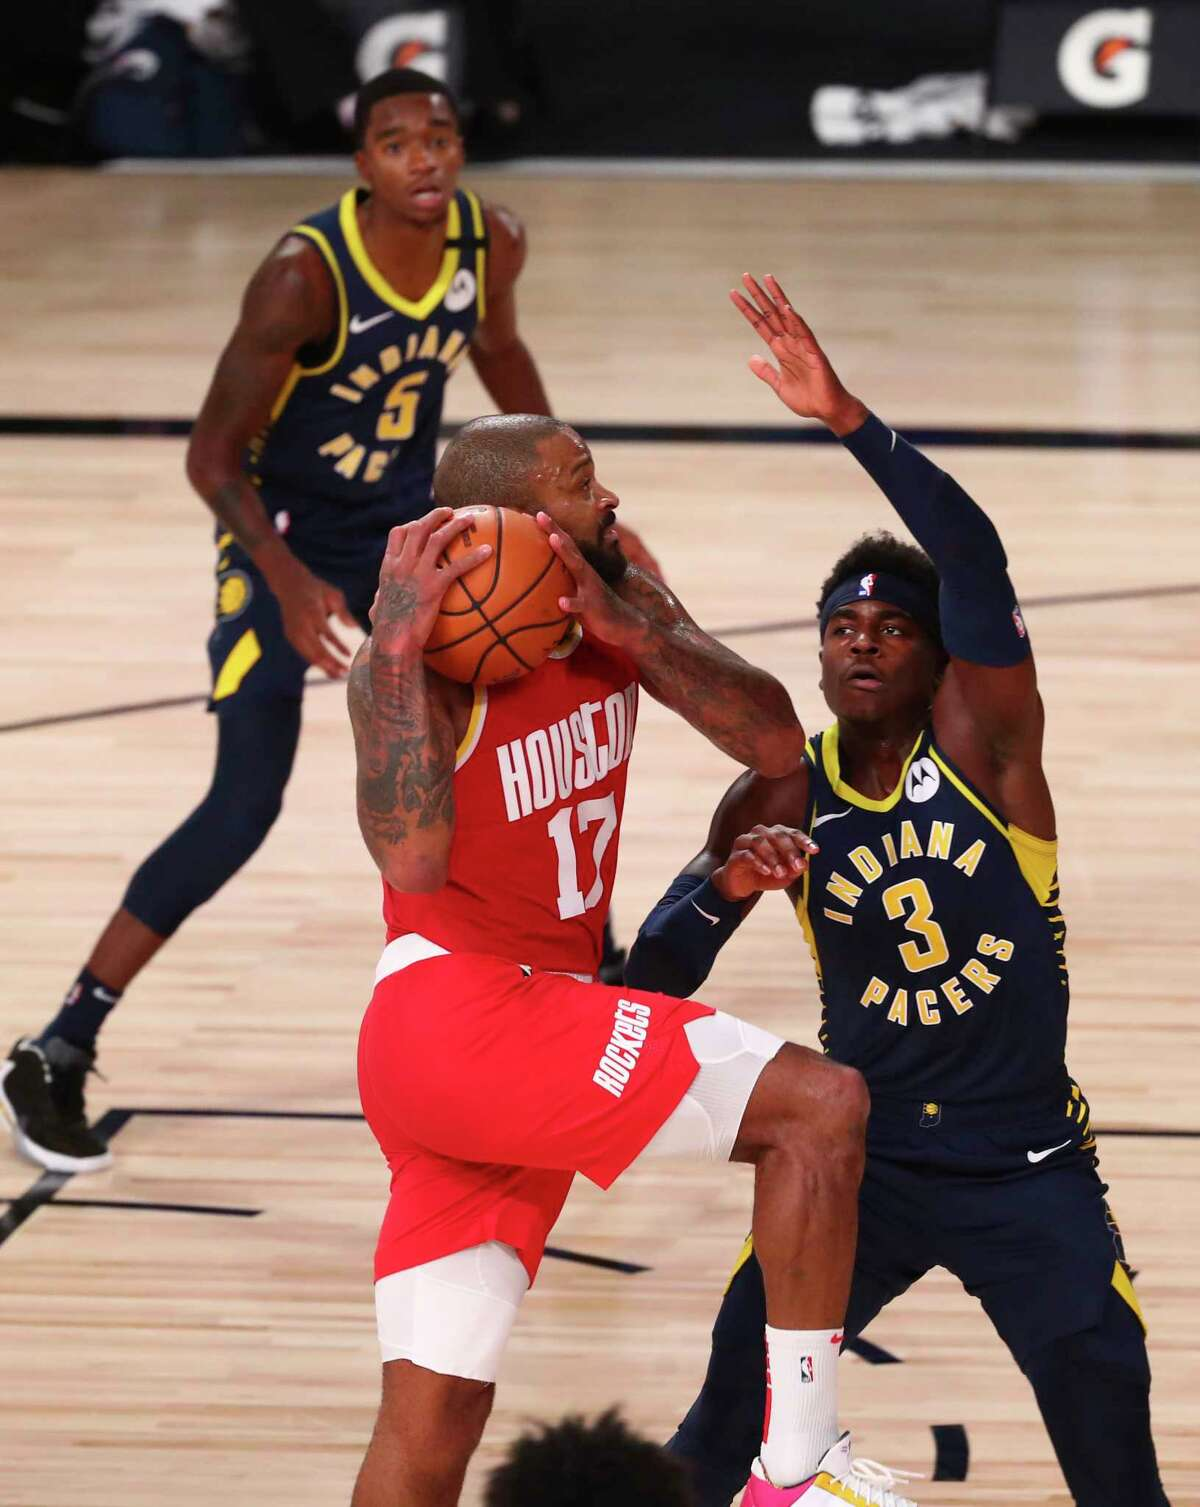 Houston Rockets forward P.J. Tucker (17) drives to the basket against Indiana Pacers guard Aaron Holiday (3) in the first half of an NBA basketball game Wednesday, Aug. 12, 2020, in Lake Buena Vista, Fla. (Kim Klement/Pool Photo via AP)